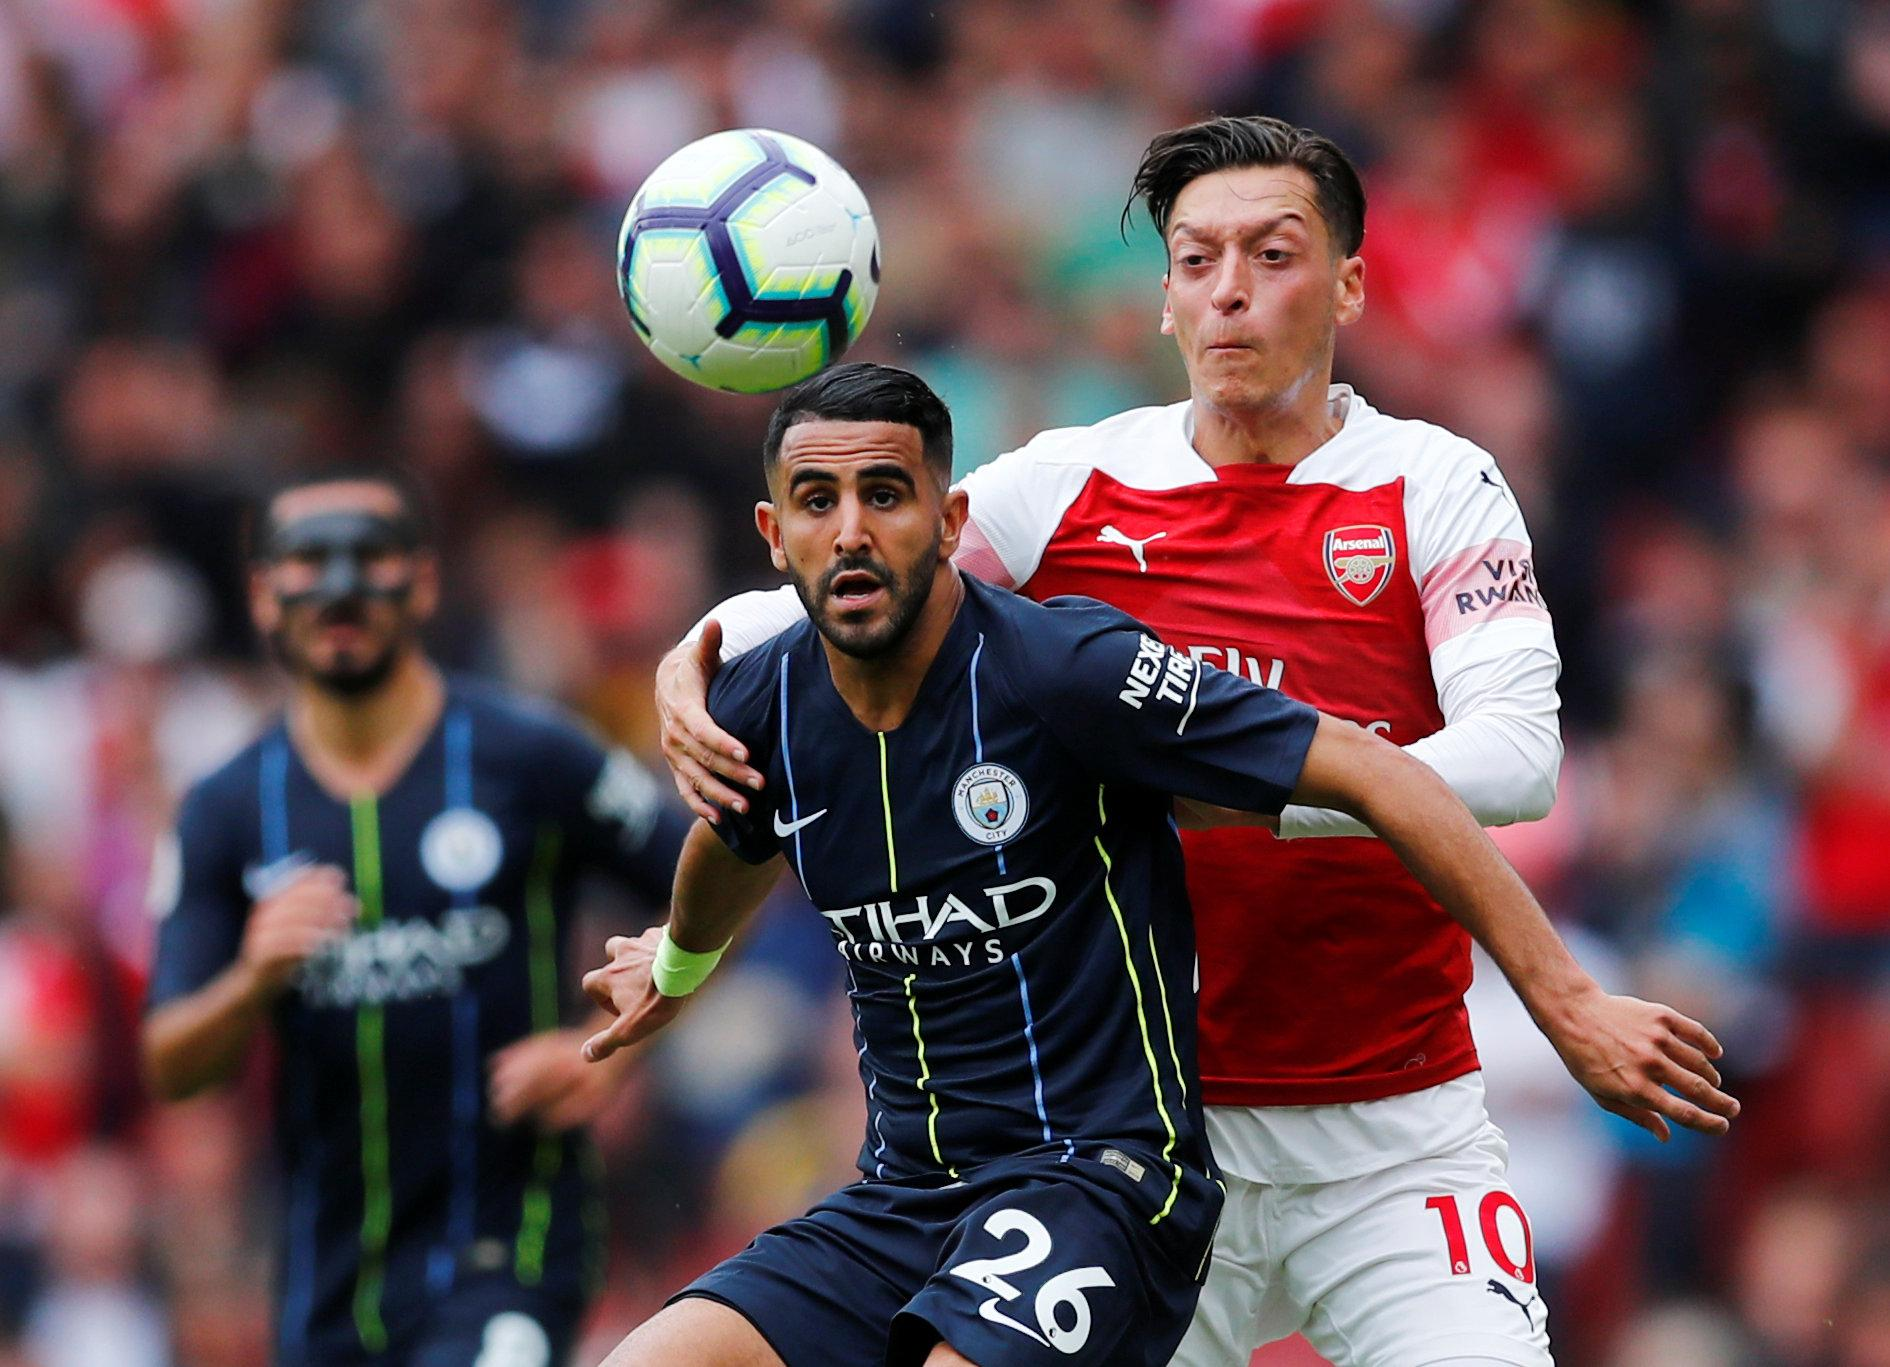 Riyad Mahrez is another player who would have been denied a work permit had Brexit already gone through